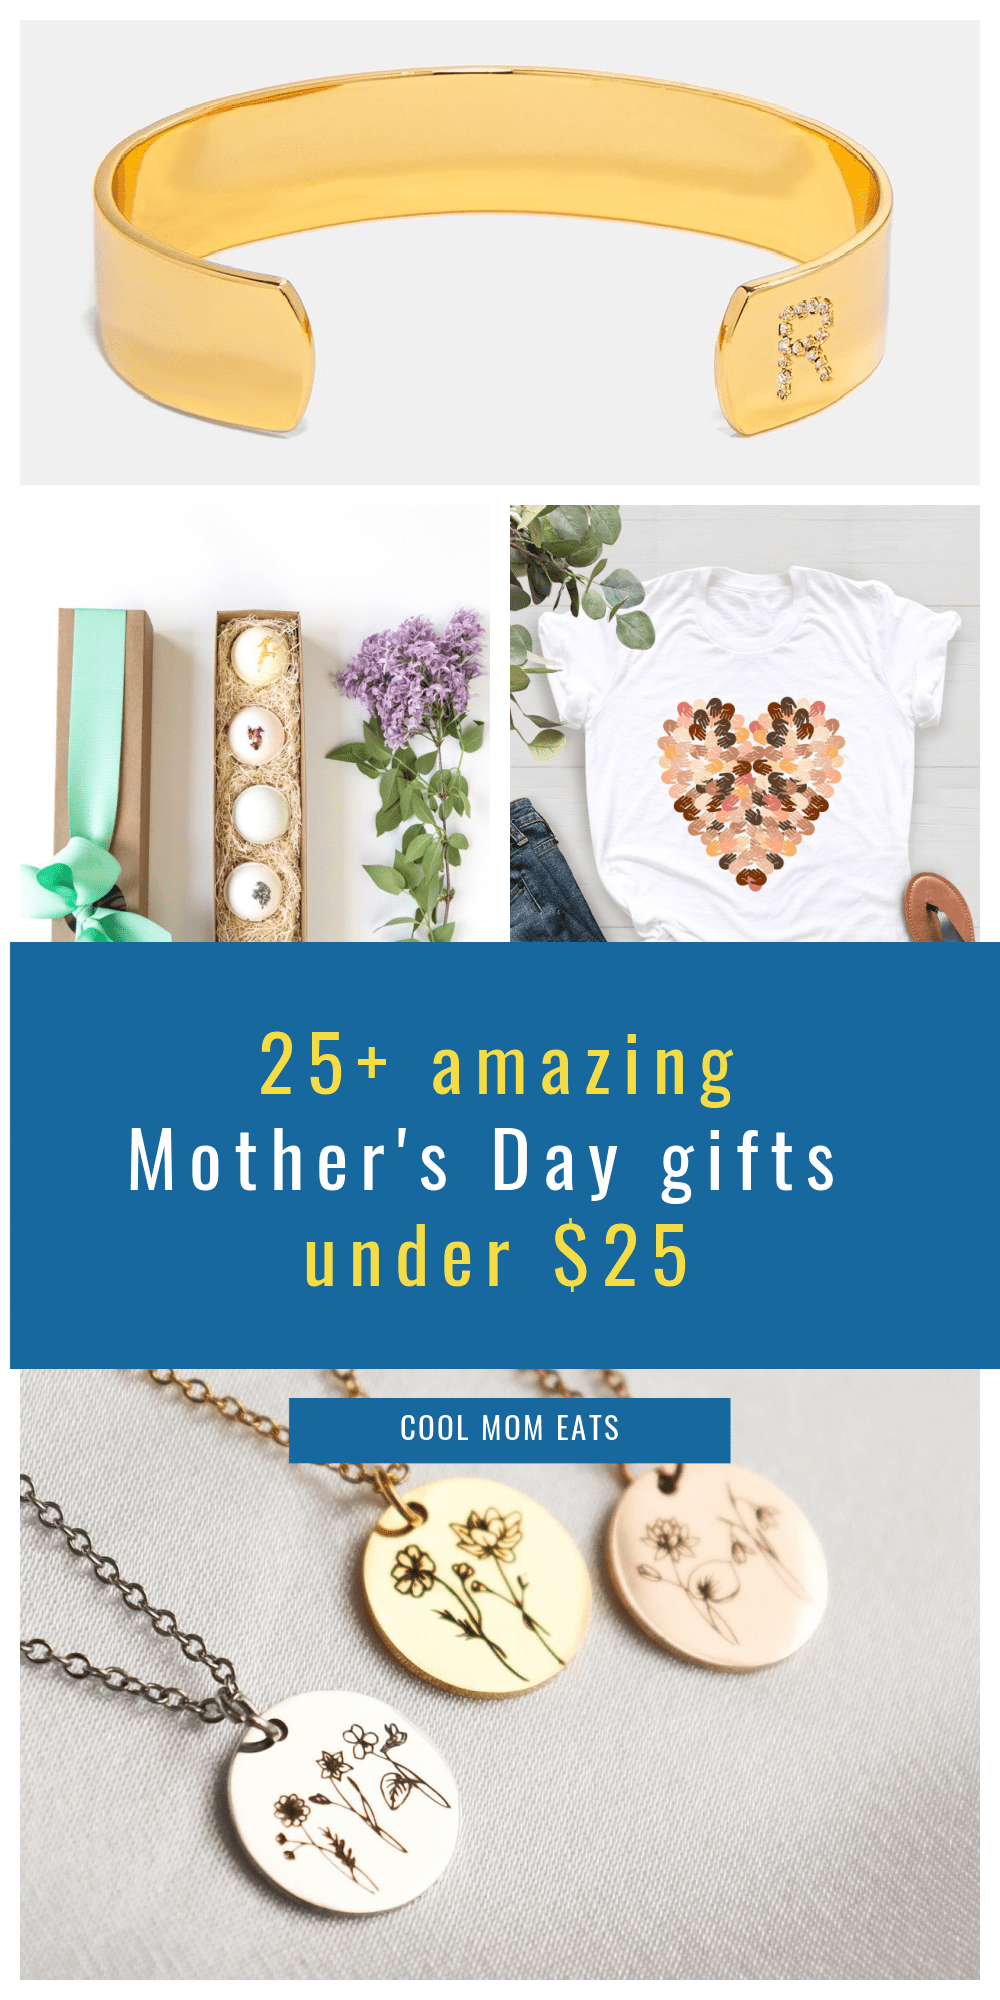 25+ amazing Mother's Day gifts under $25 | Cool Mom Picks